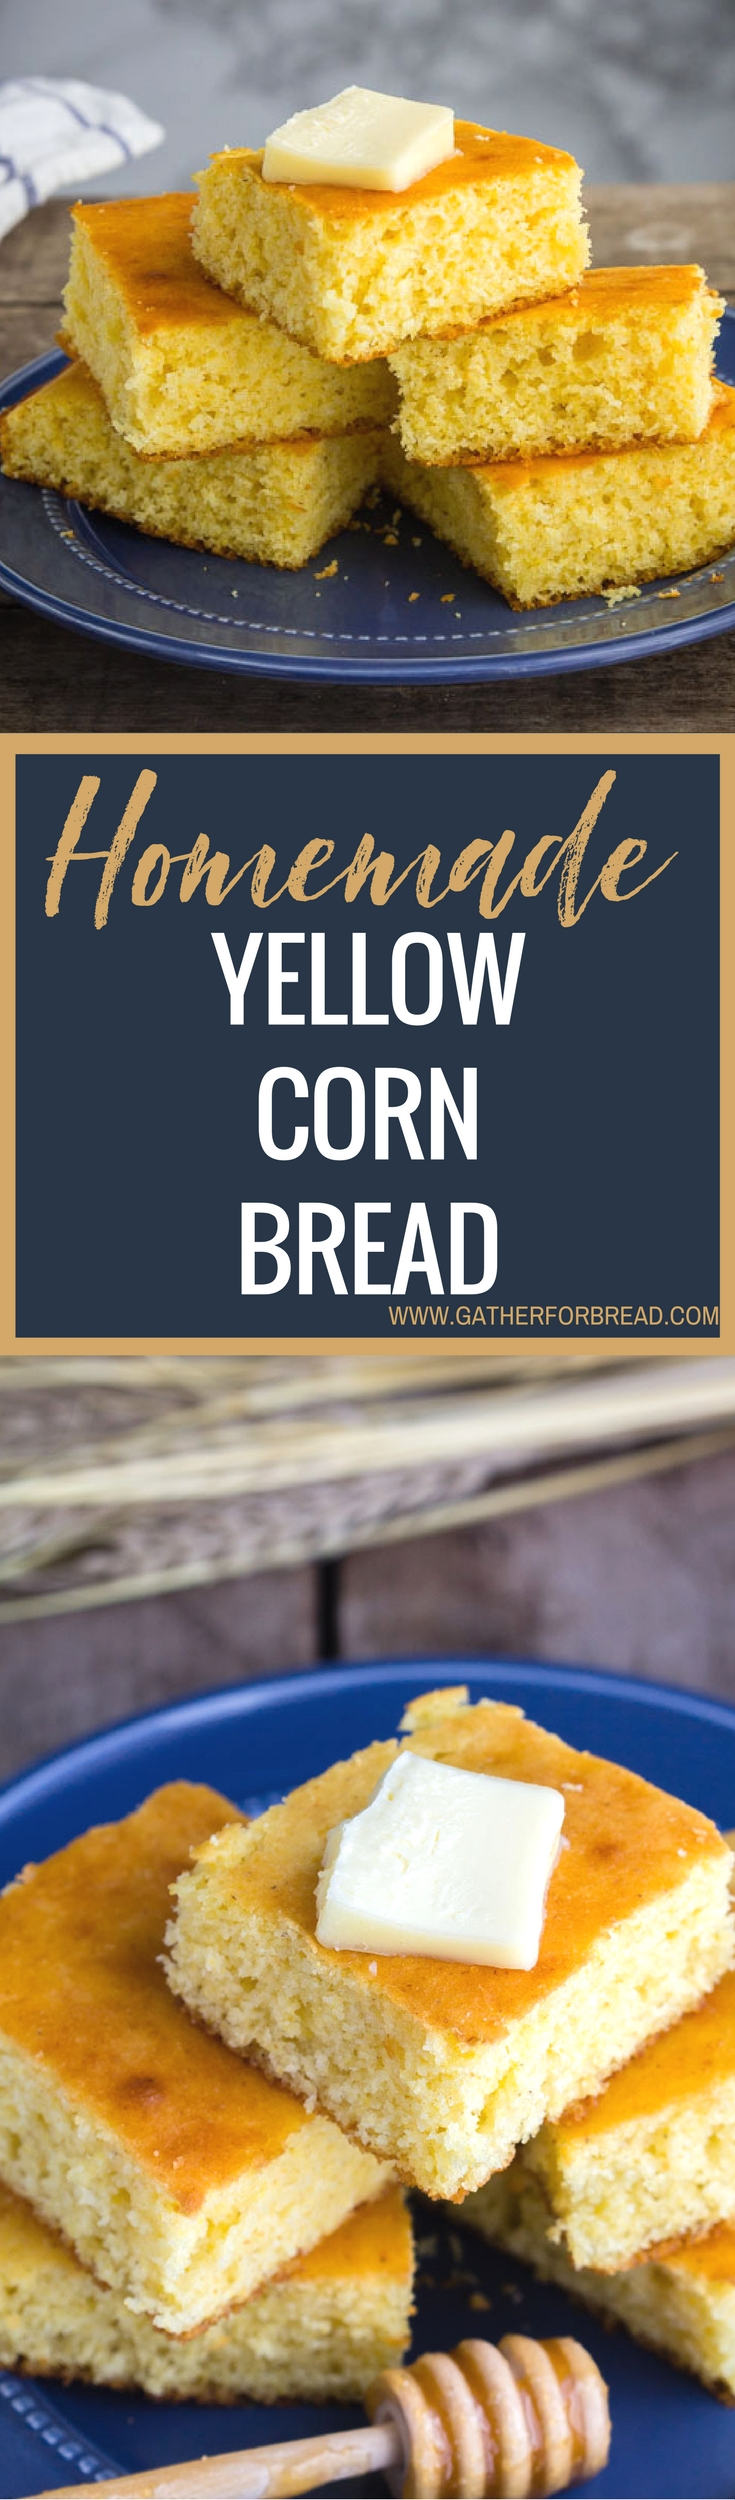 Homemade Yellow Corn Bread - Slightly sweet golden yellow corn bread. Simple homemade bread recipe made with milk, perfect with chili or soup. Make as muffins or a loaf.